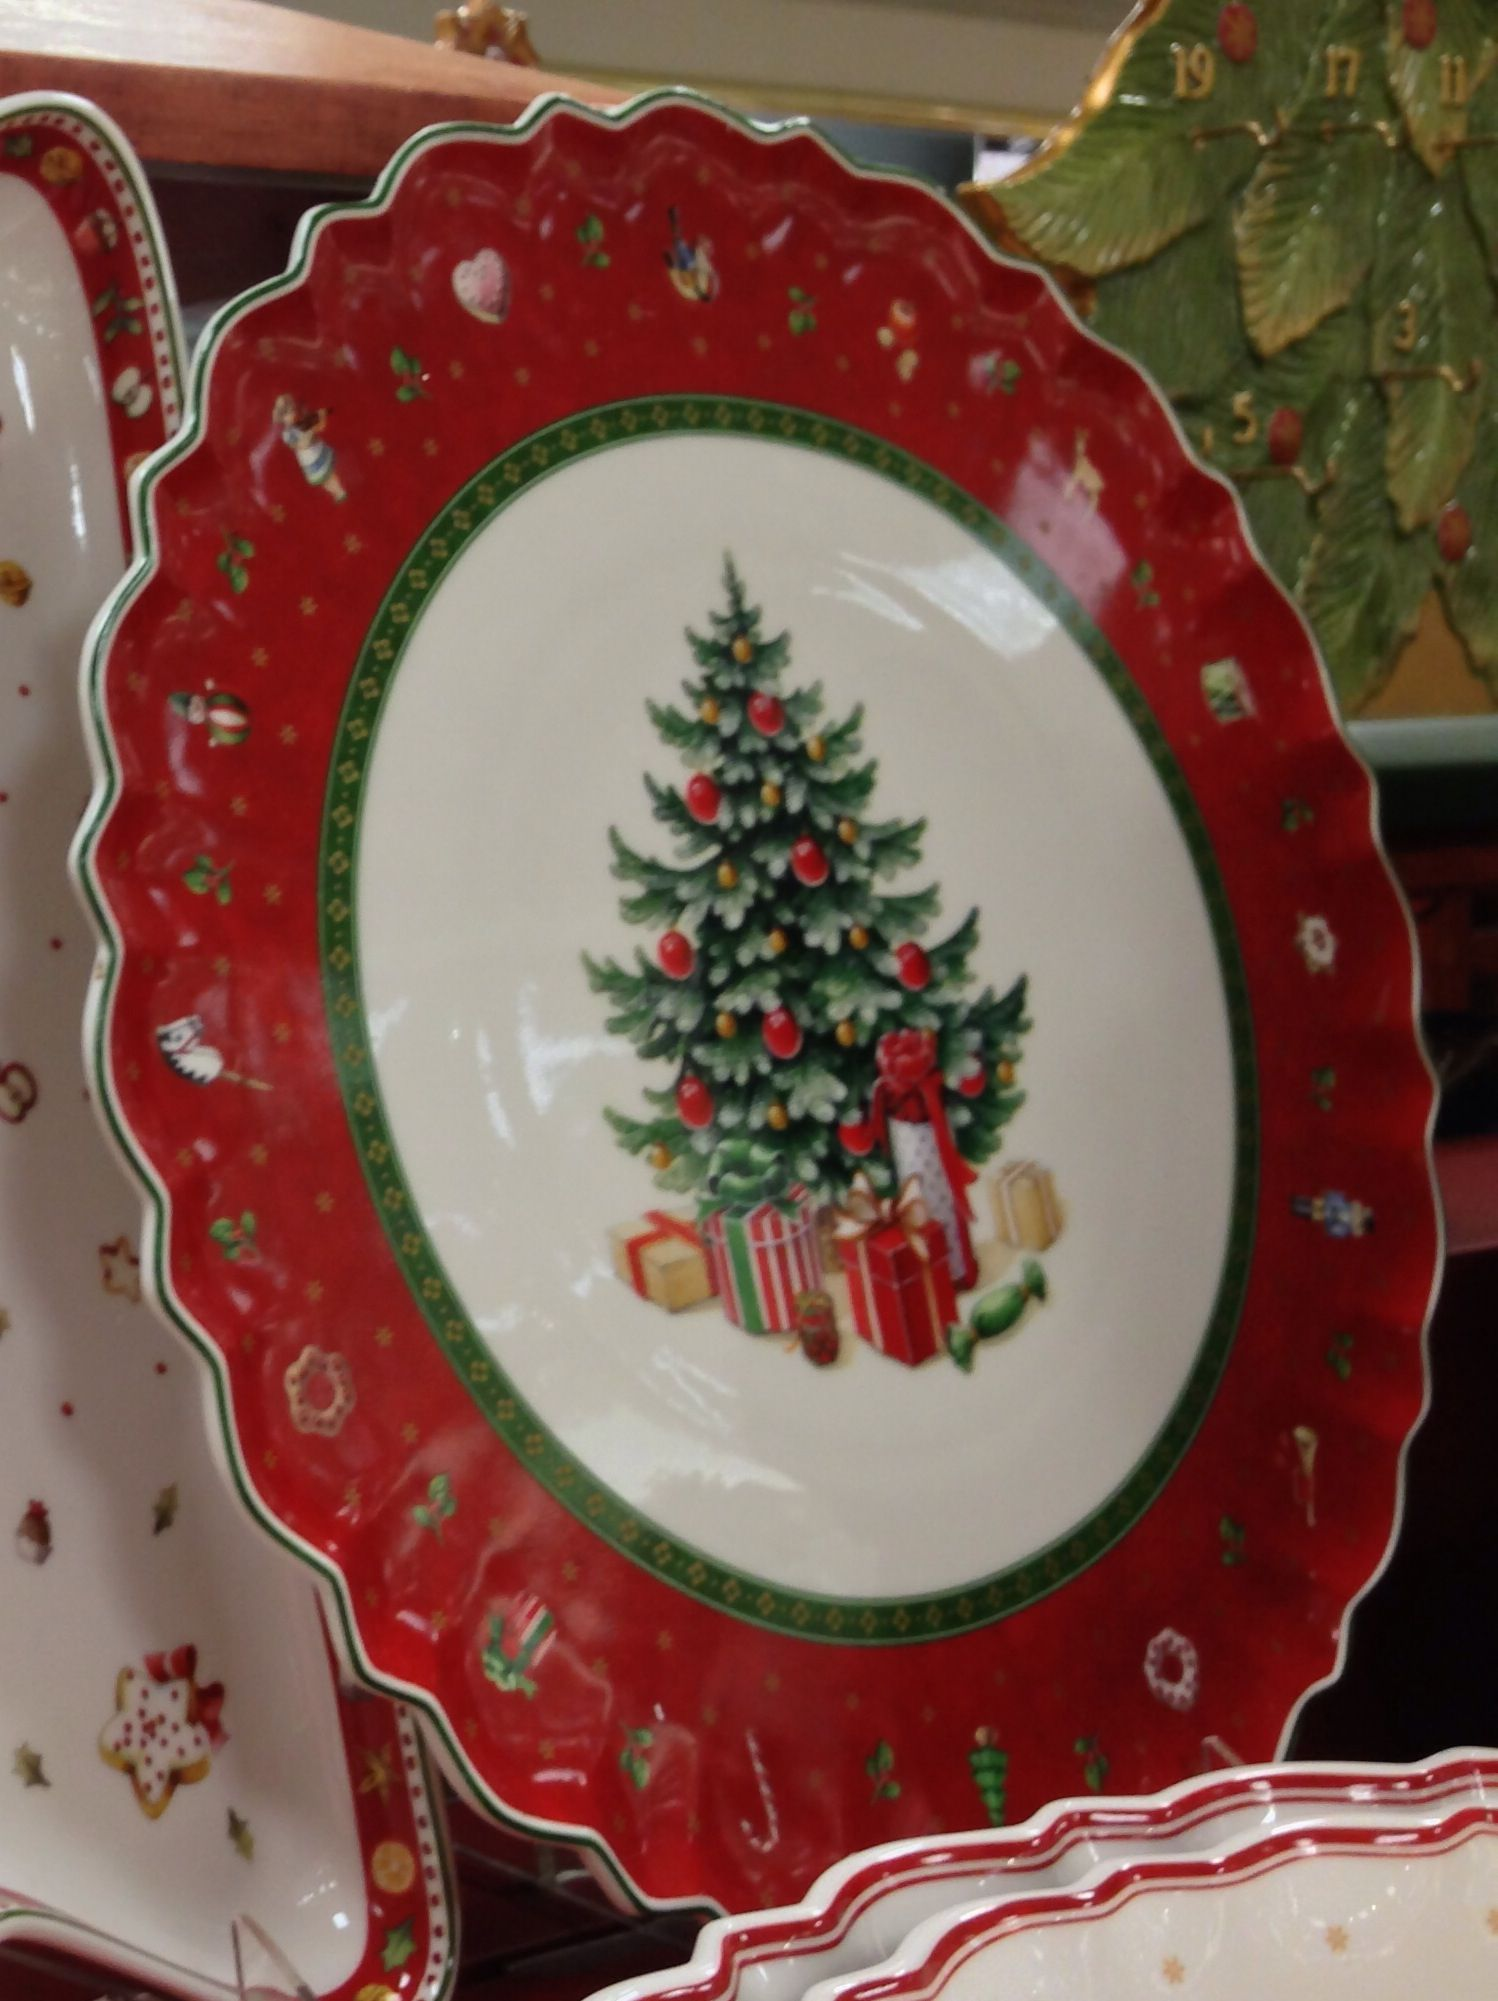 Villeroy boch annual christmas edition 2013 serving for Villeroy boch christmas